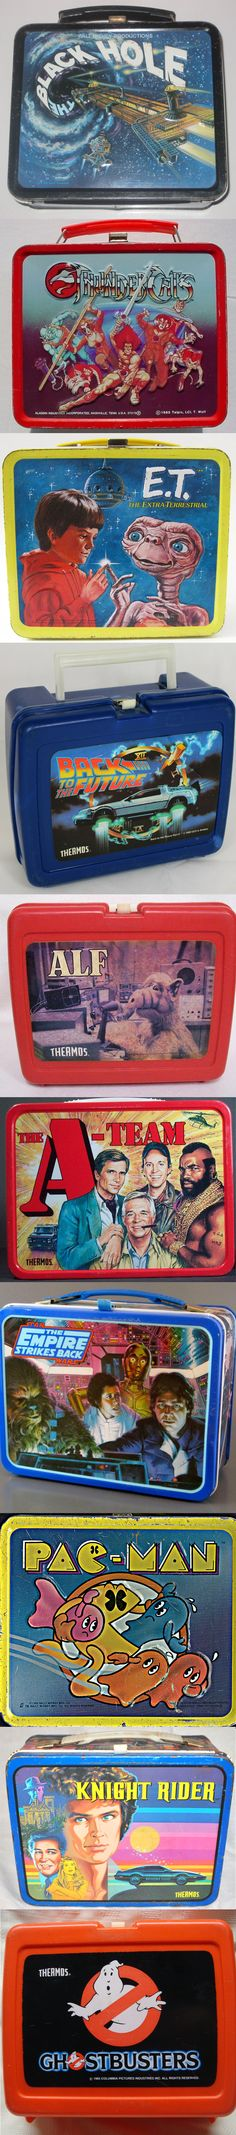 80's Lunchboxes ( sorry girls, boys only!) ( Vintage Lunchbox Retro Lunch Box / 1980's pop culture / film / cartoon / movie memorabilia / 80s / black hole / thunder cats / ET / E.T / knight rider / star wars empire strikes back / a-team / back to the future / pac man / ghost busters )